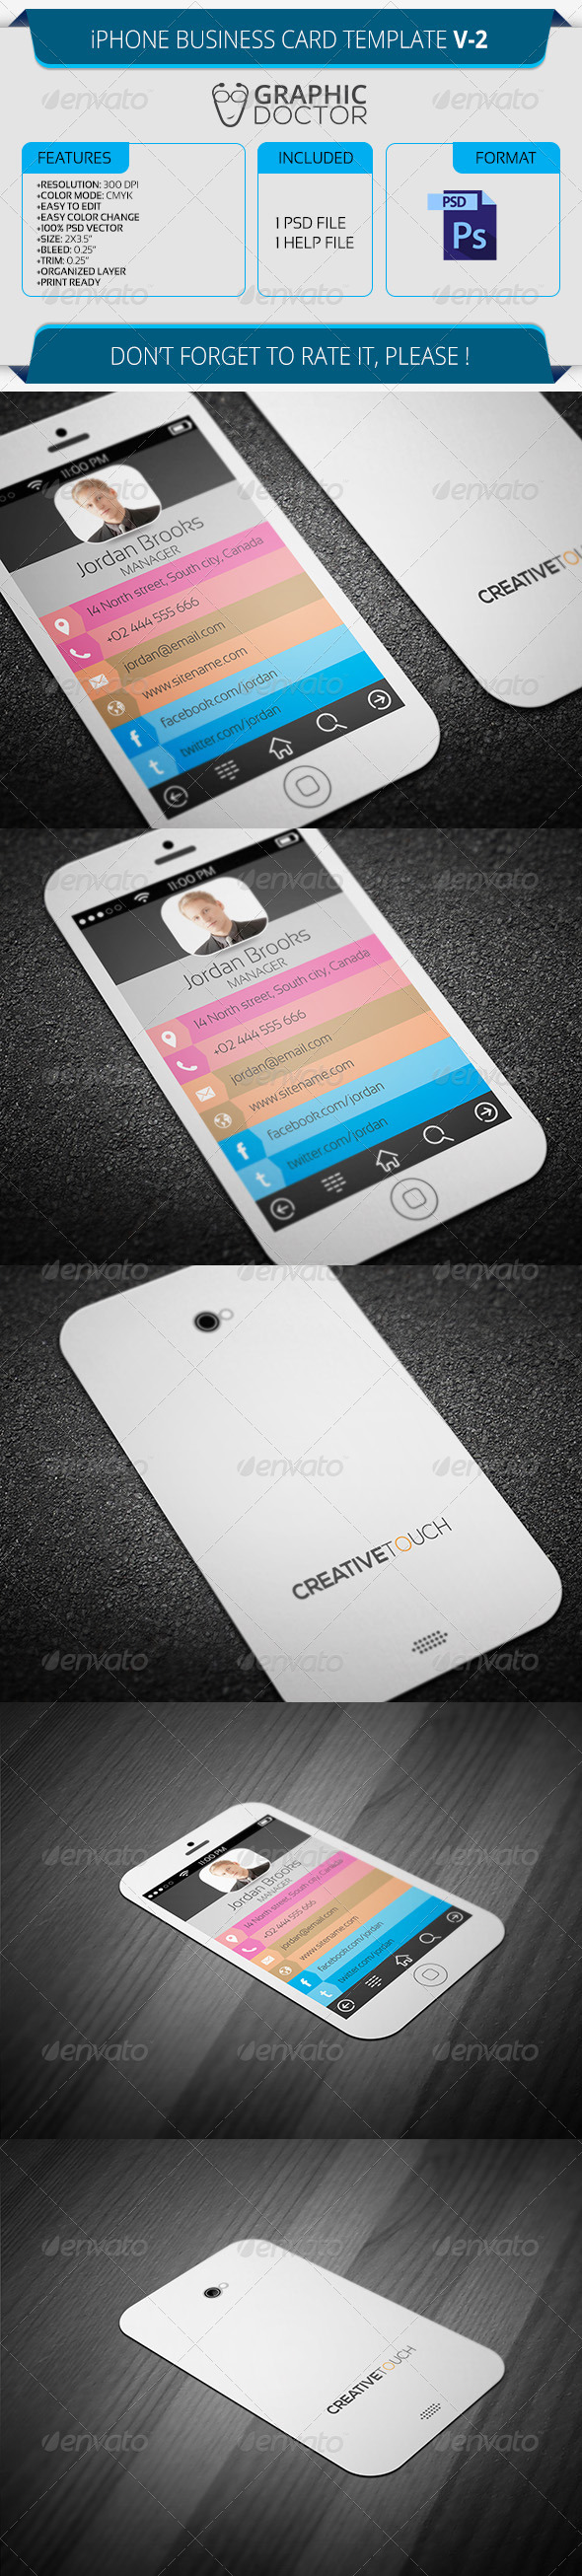 Iphone business card template v 2 by graphicdoctor graphicriver iphone business card template v 2 real objects business cards colourmoves Gallery